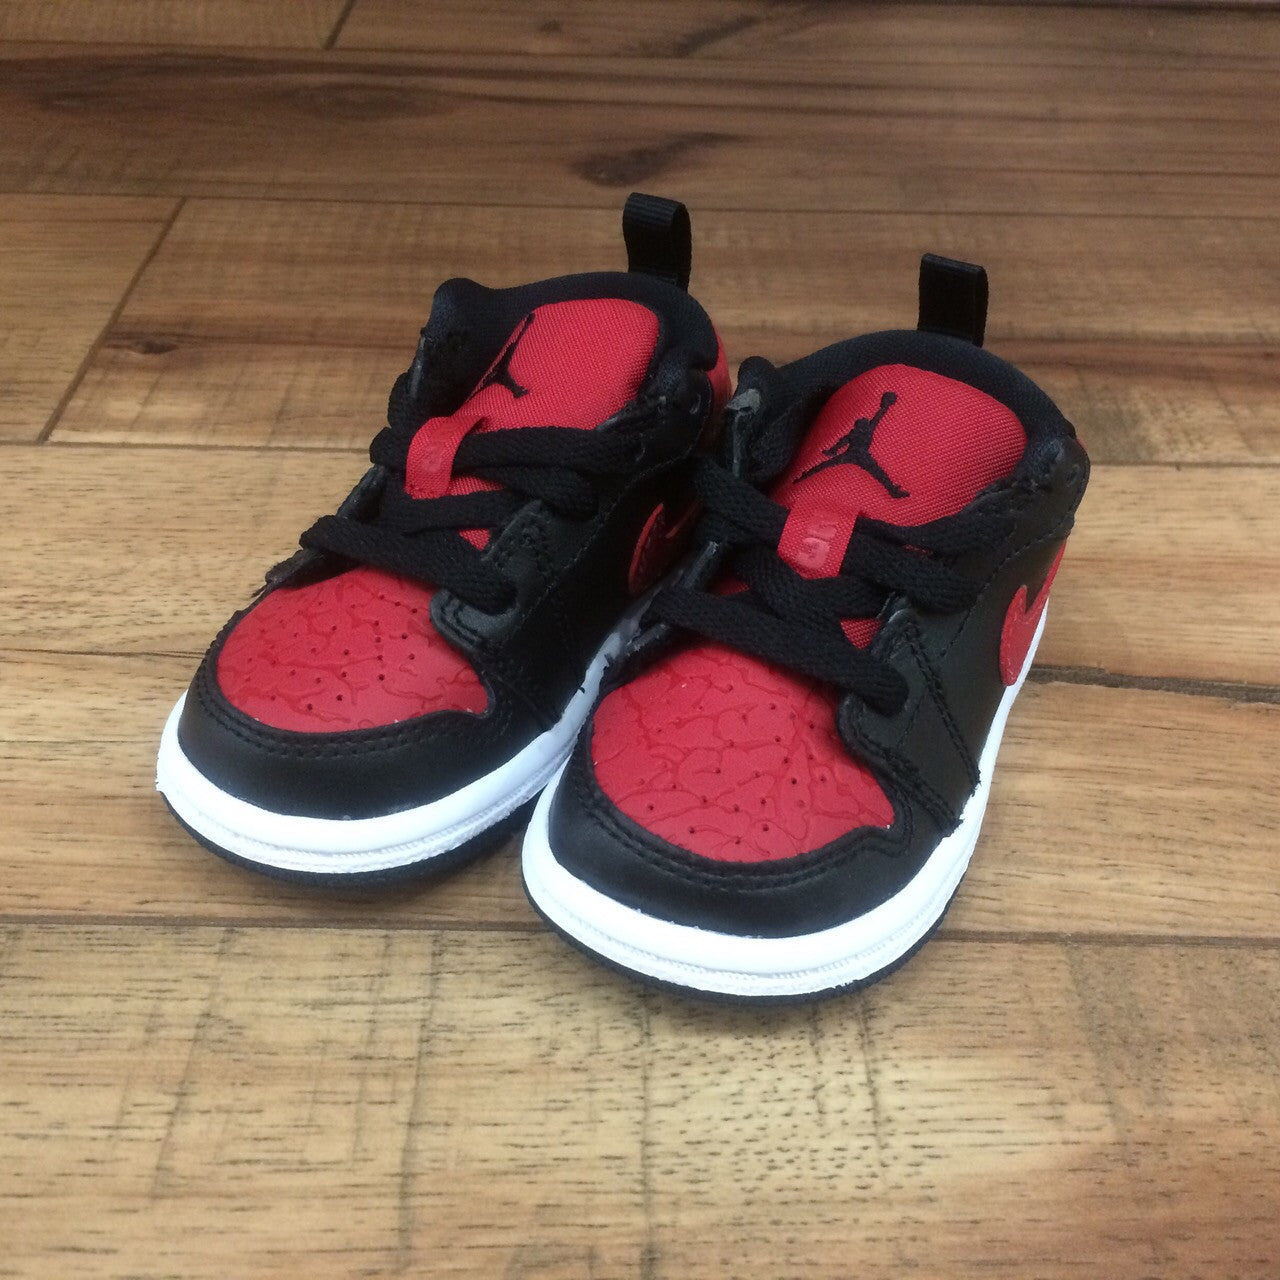 quality design 9b895 42a6a ... shoes white 61849 579 4c64b e74a0 ireland nike air baby jordan 1 red  black low ps 644476 013 superbored clothing ltd. ...